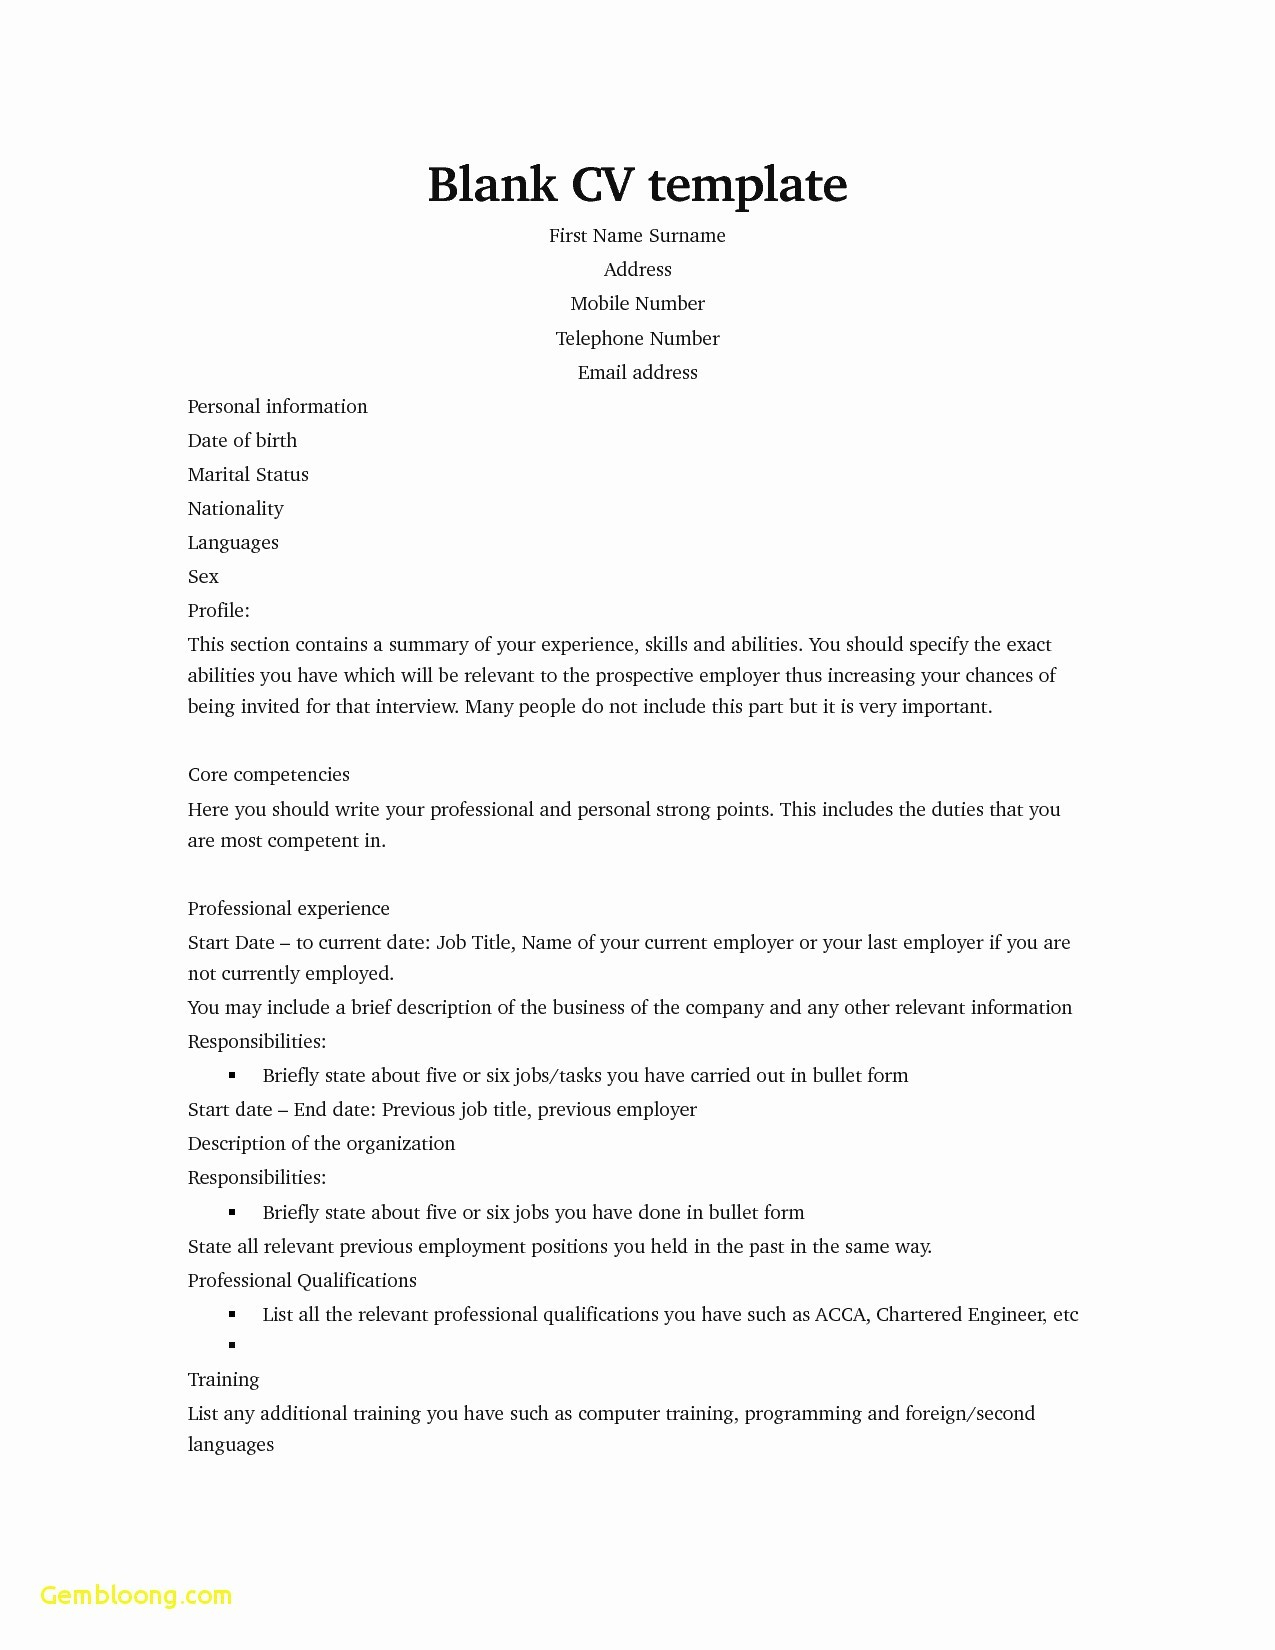 Rbs Resume Template - Rbs Resume Template Lovely Resume Template for Mac Pages Fresh